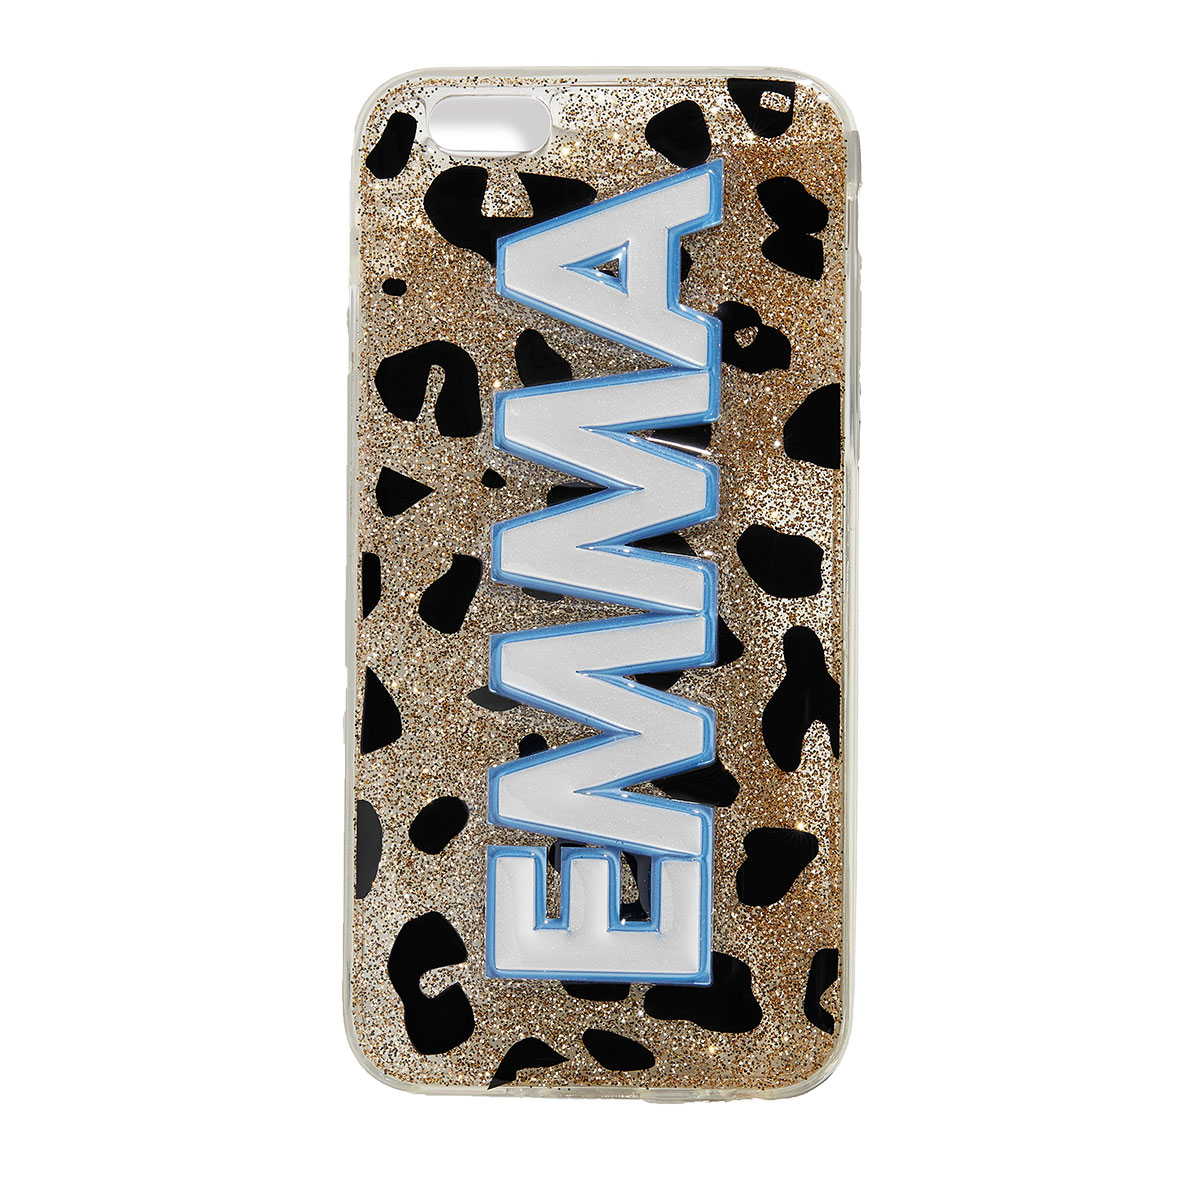 BaubleBar x OMC Personalized iPhone Case